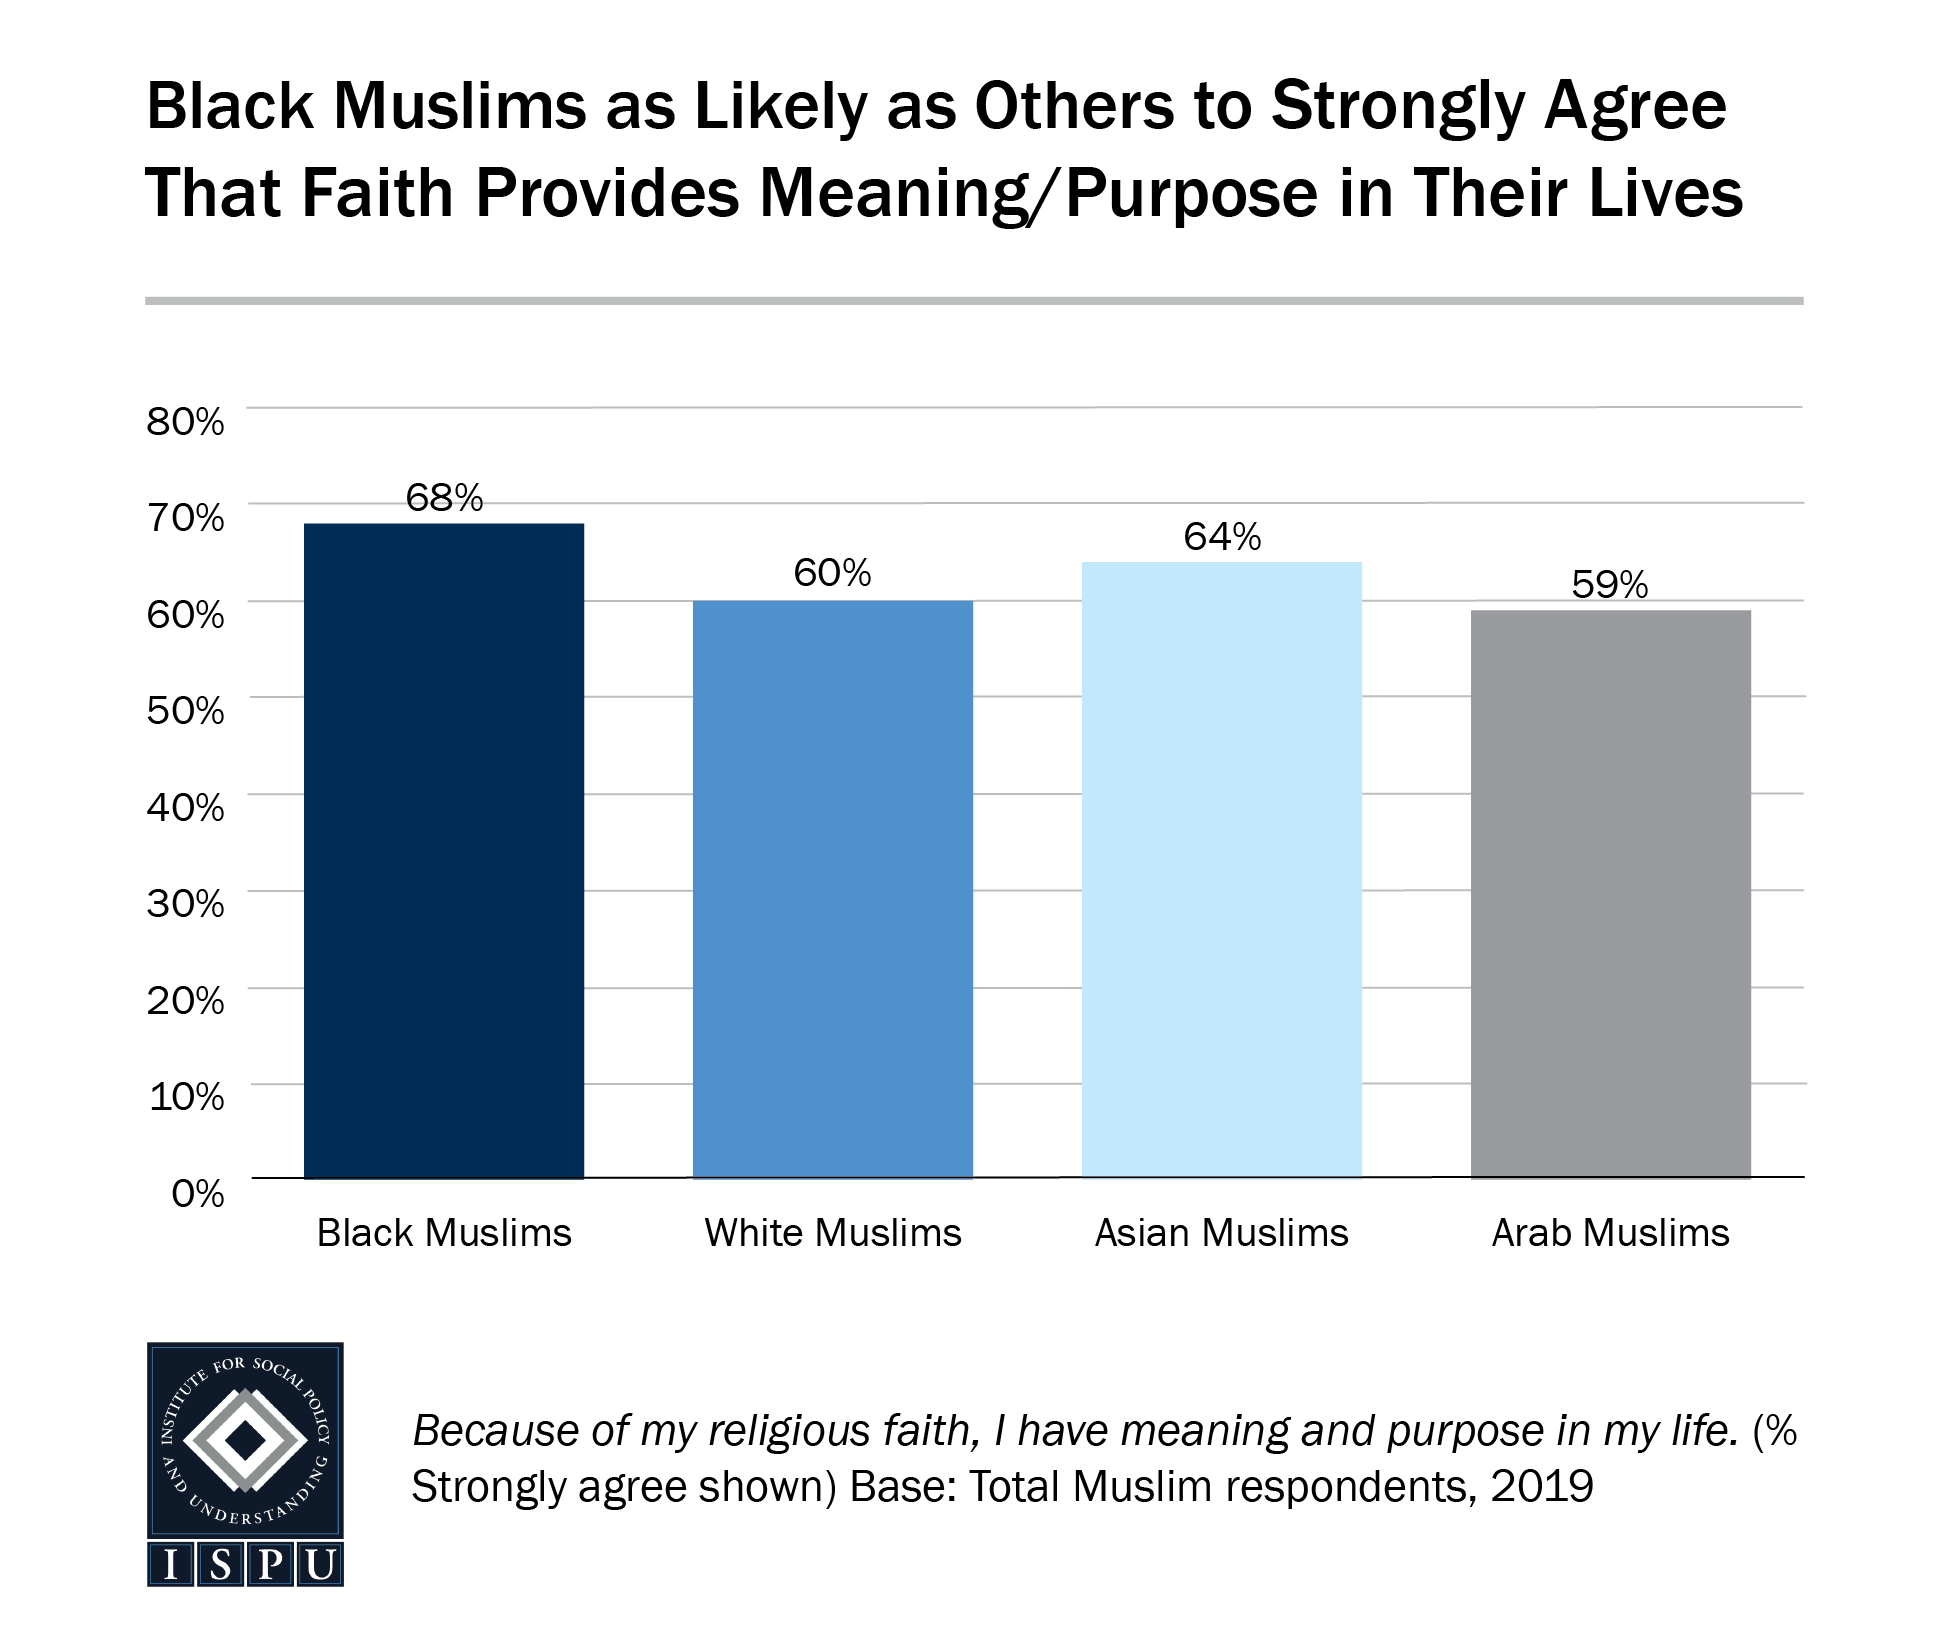 A bar graph showing that Black Muslims are as likely as others to strongly agree that faith provides meaning/purpose in their lives